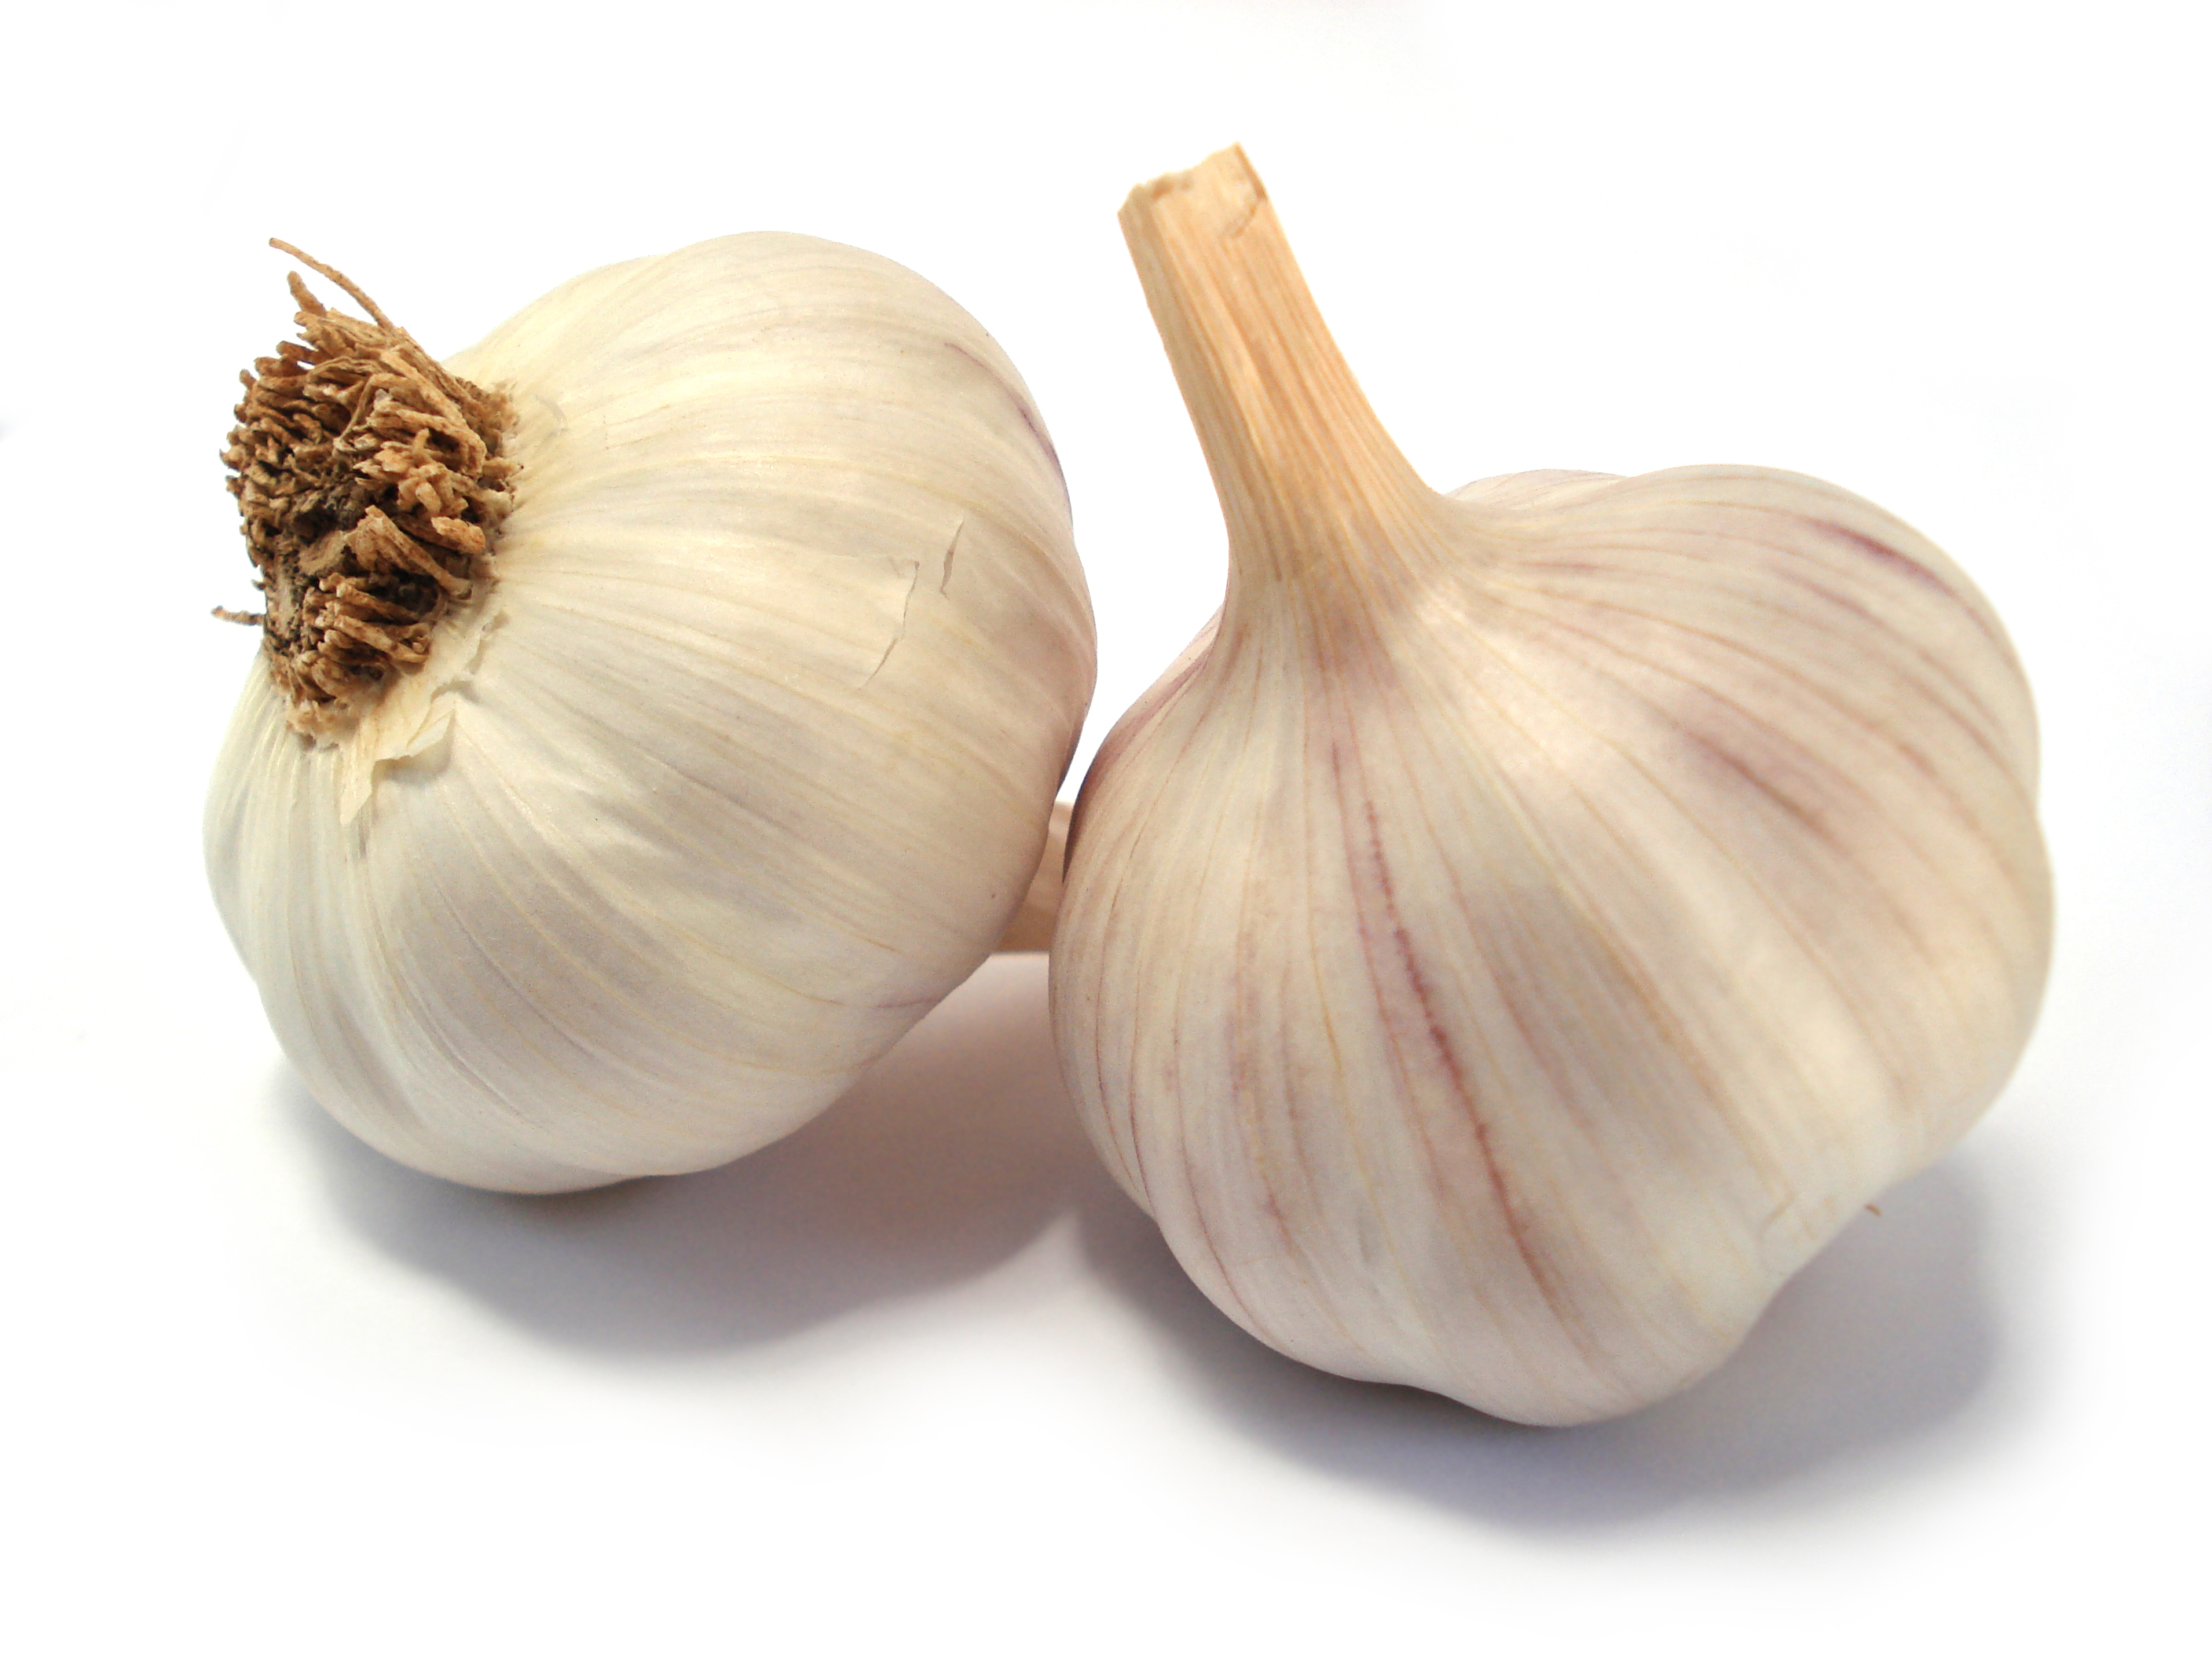 Garlic - 12 photo